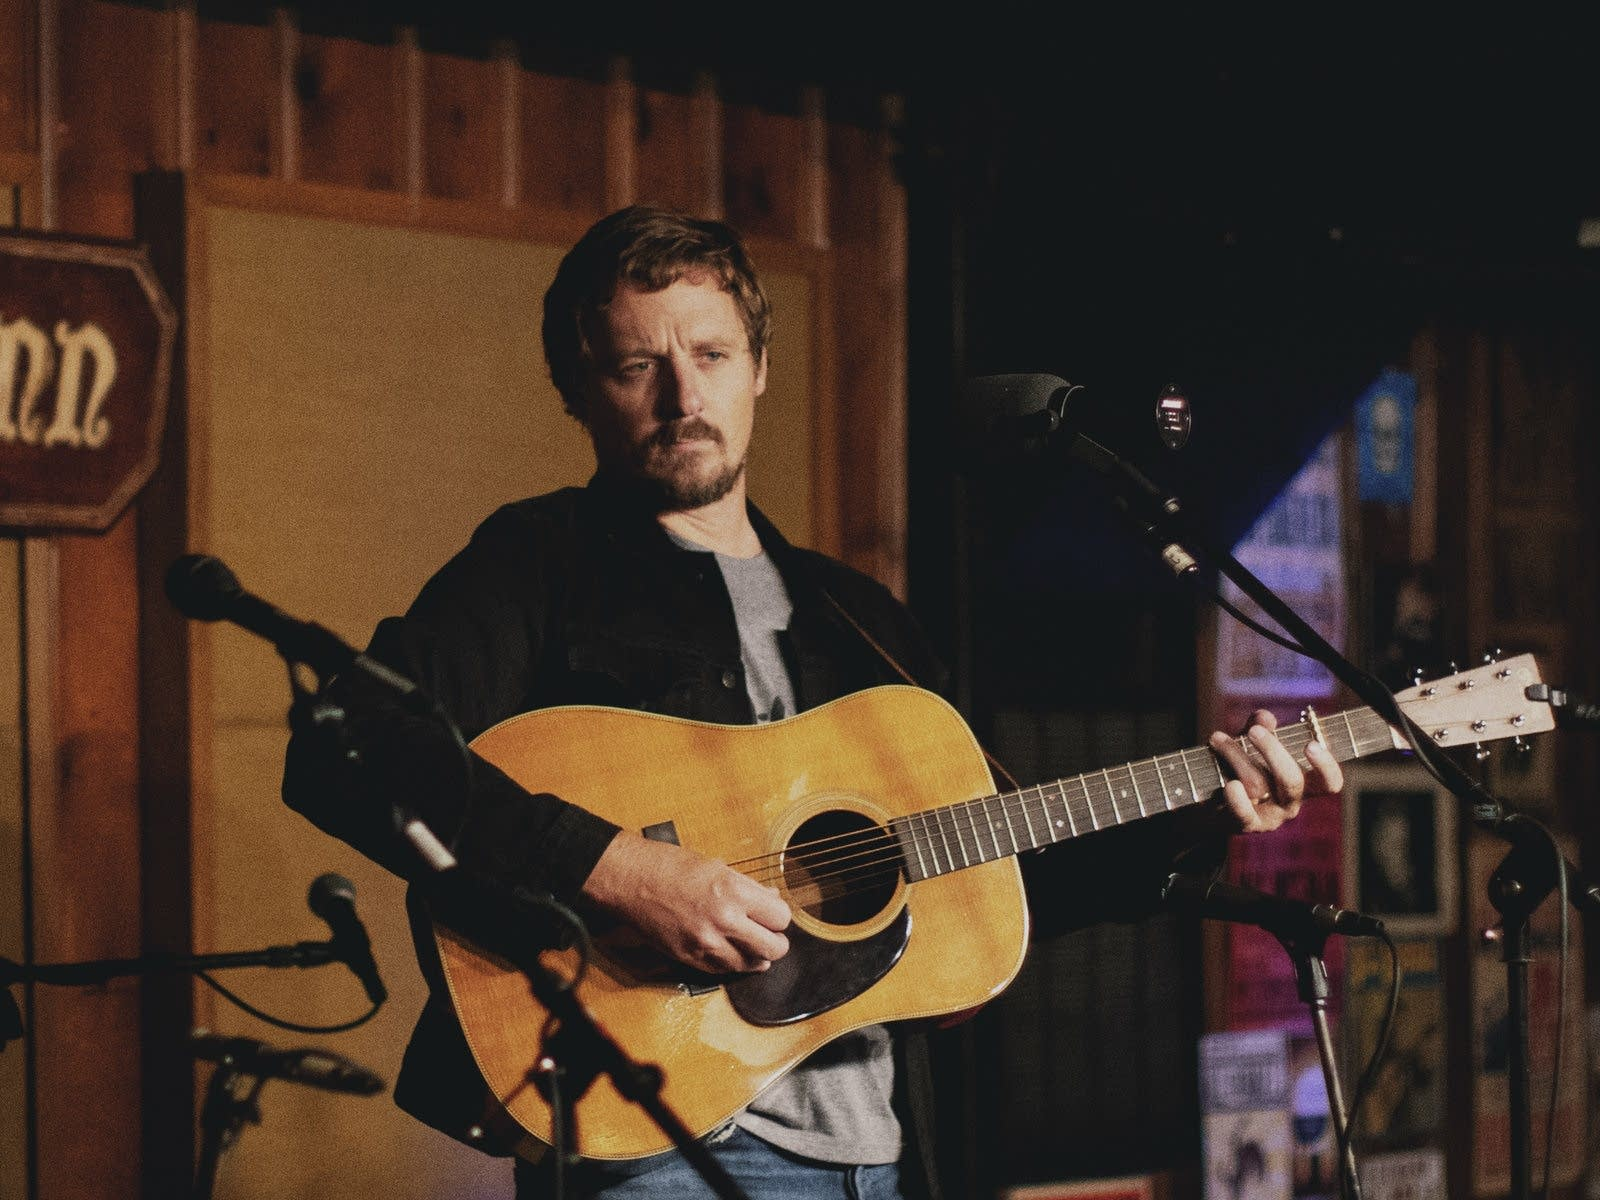 Sturgill Simpson performing at the Station Inn in Nashville